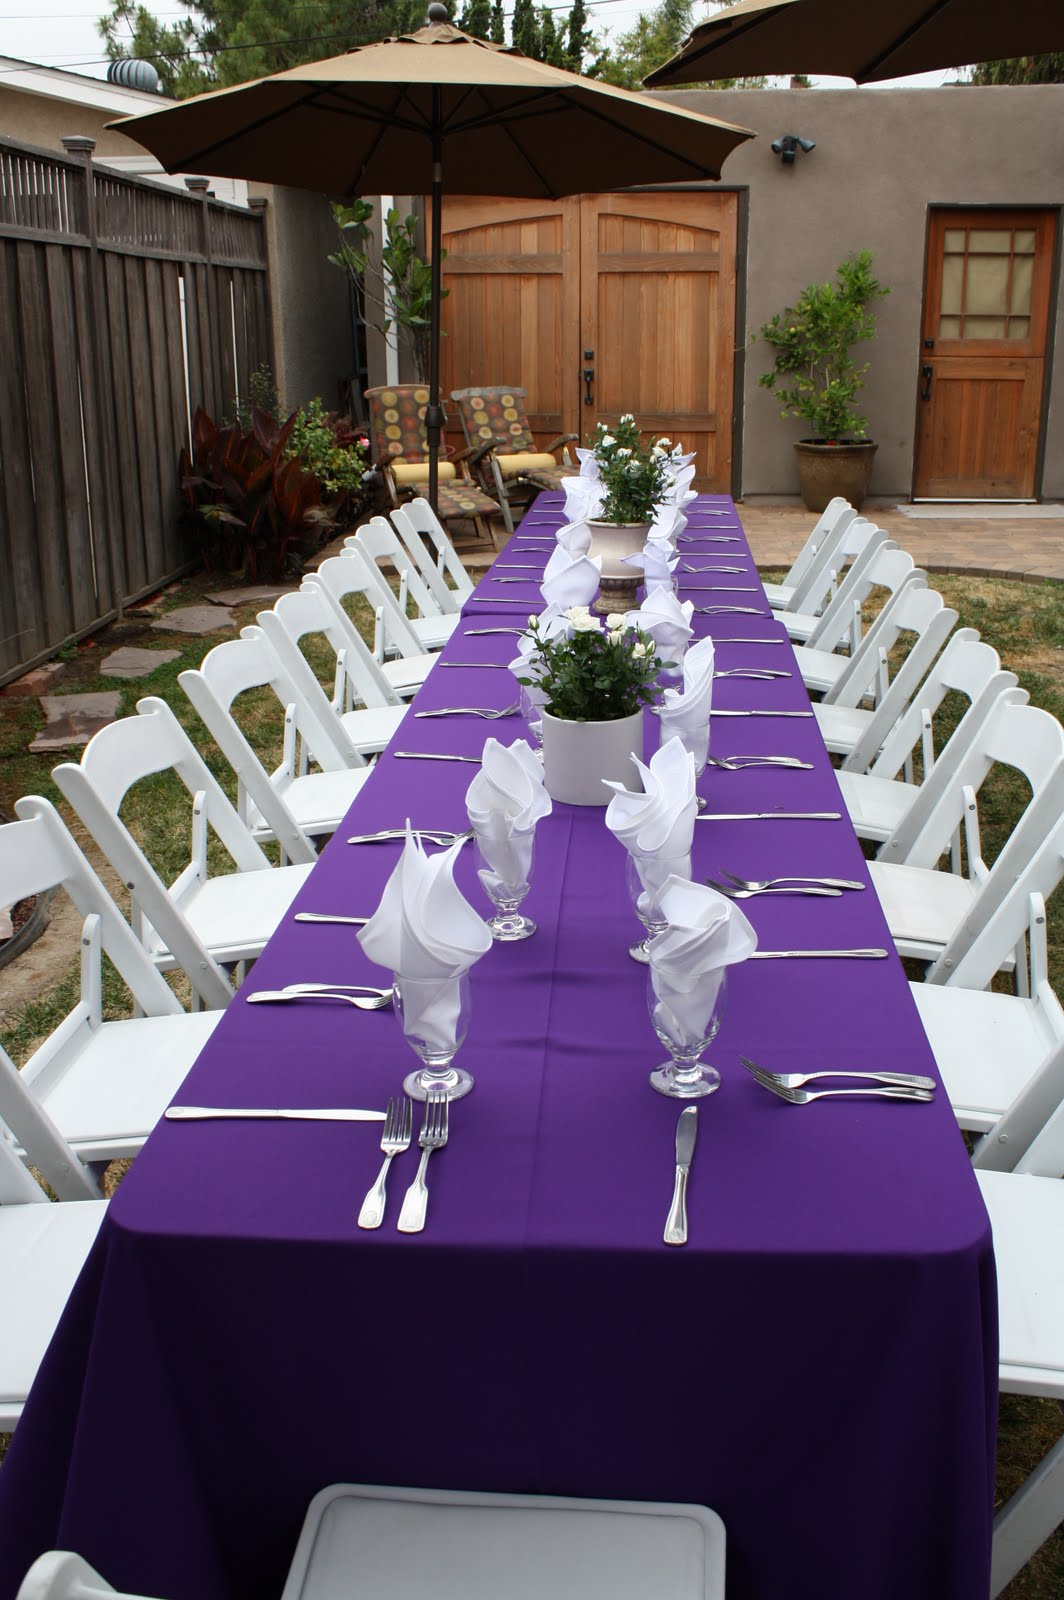 party productions banquet tables make for an intimate gathering